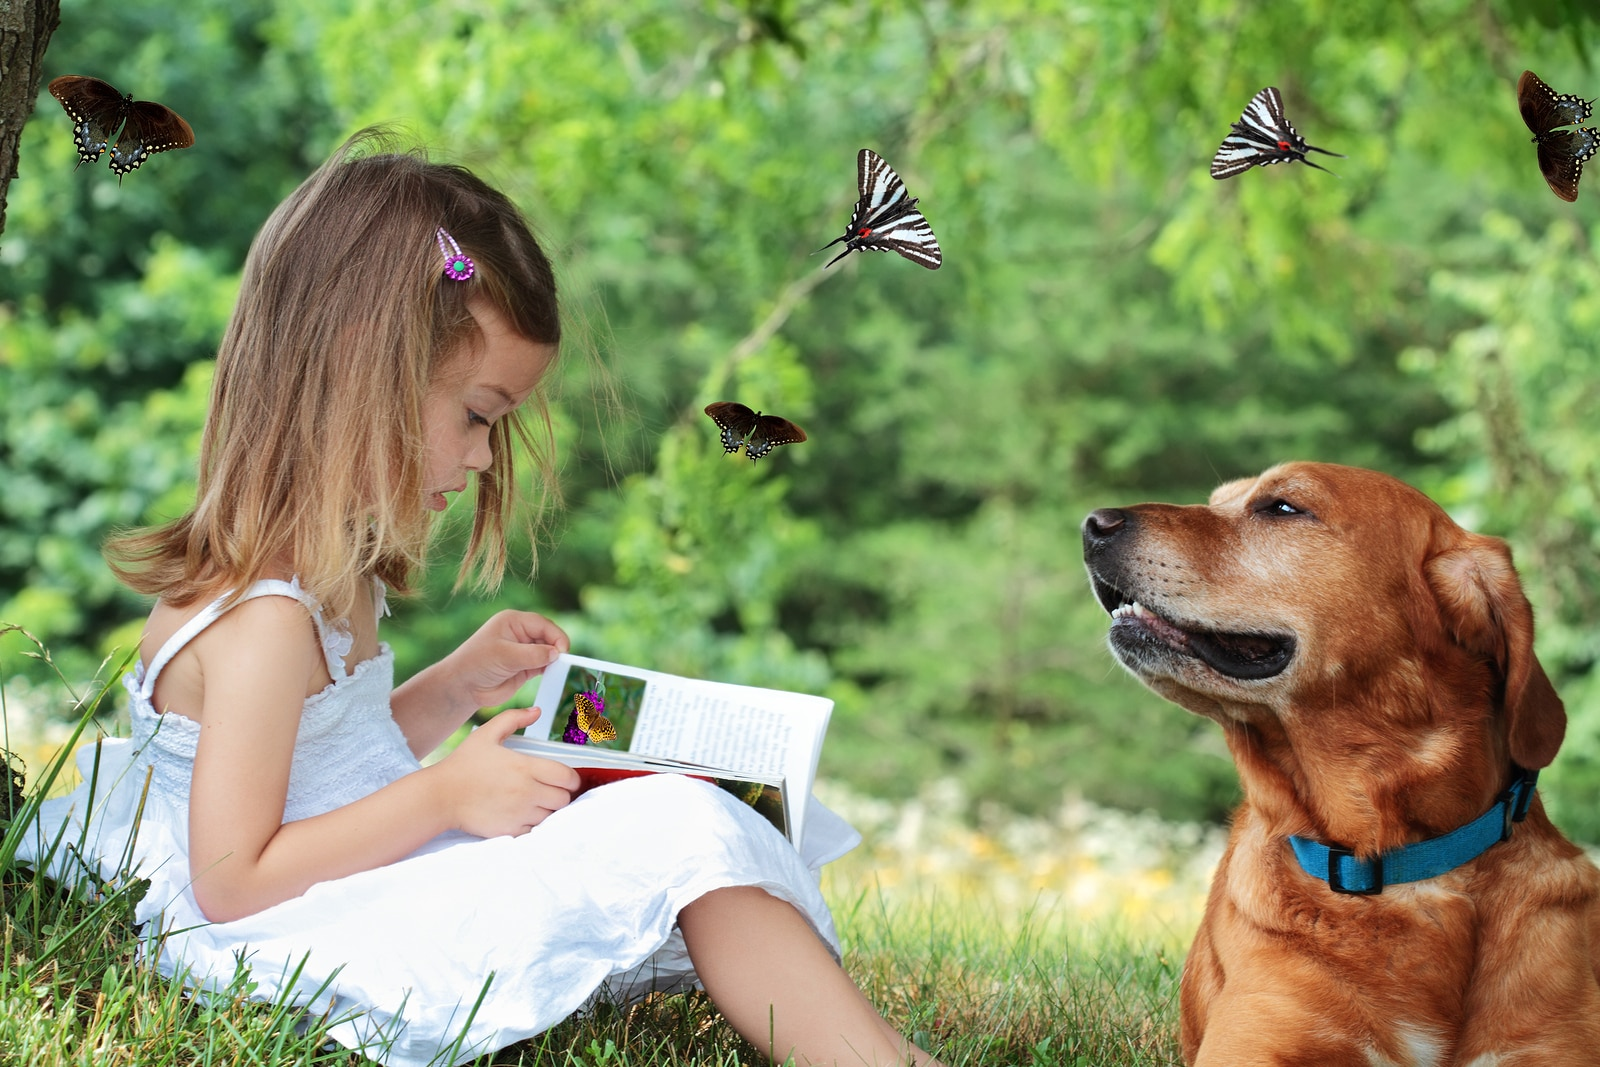 Little girl sits under a tree reading a book about butterflies as dog sits nearby watching butterflies fly around them.